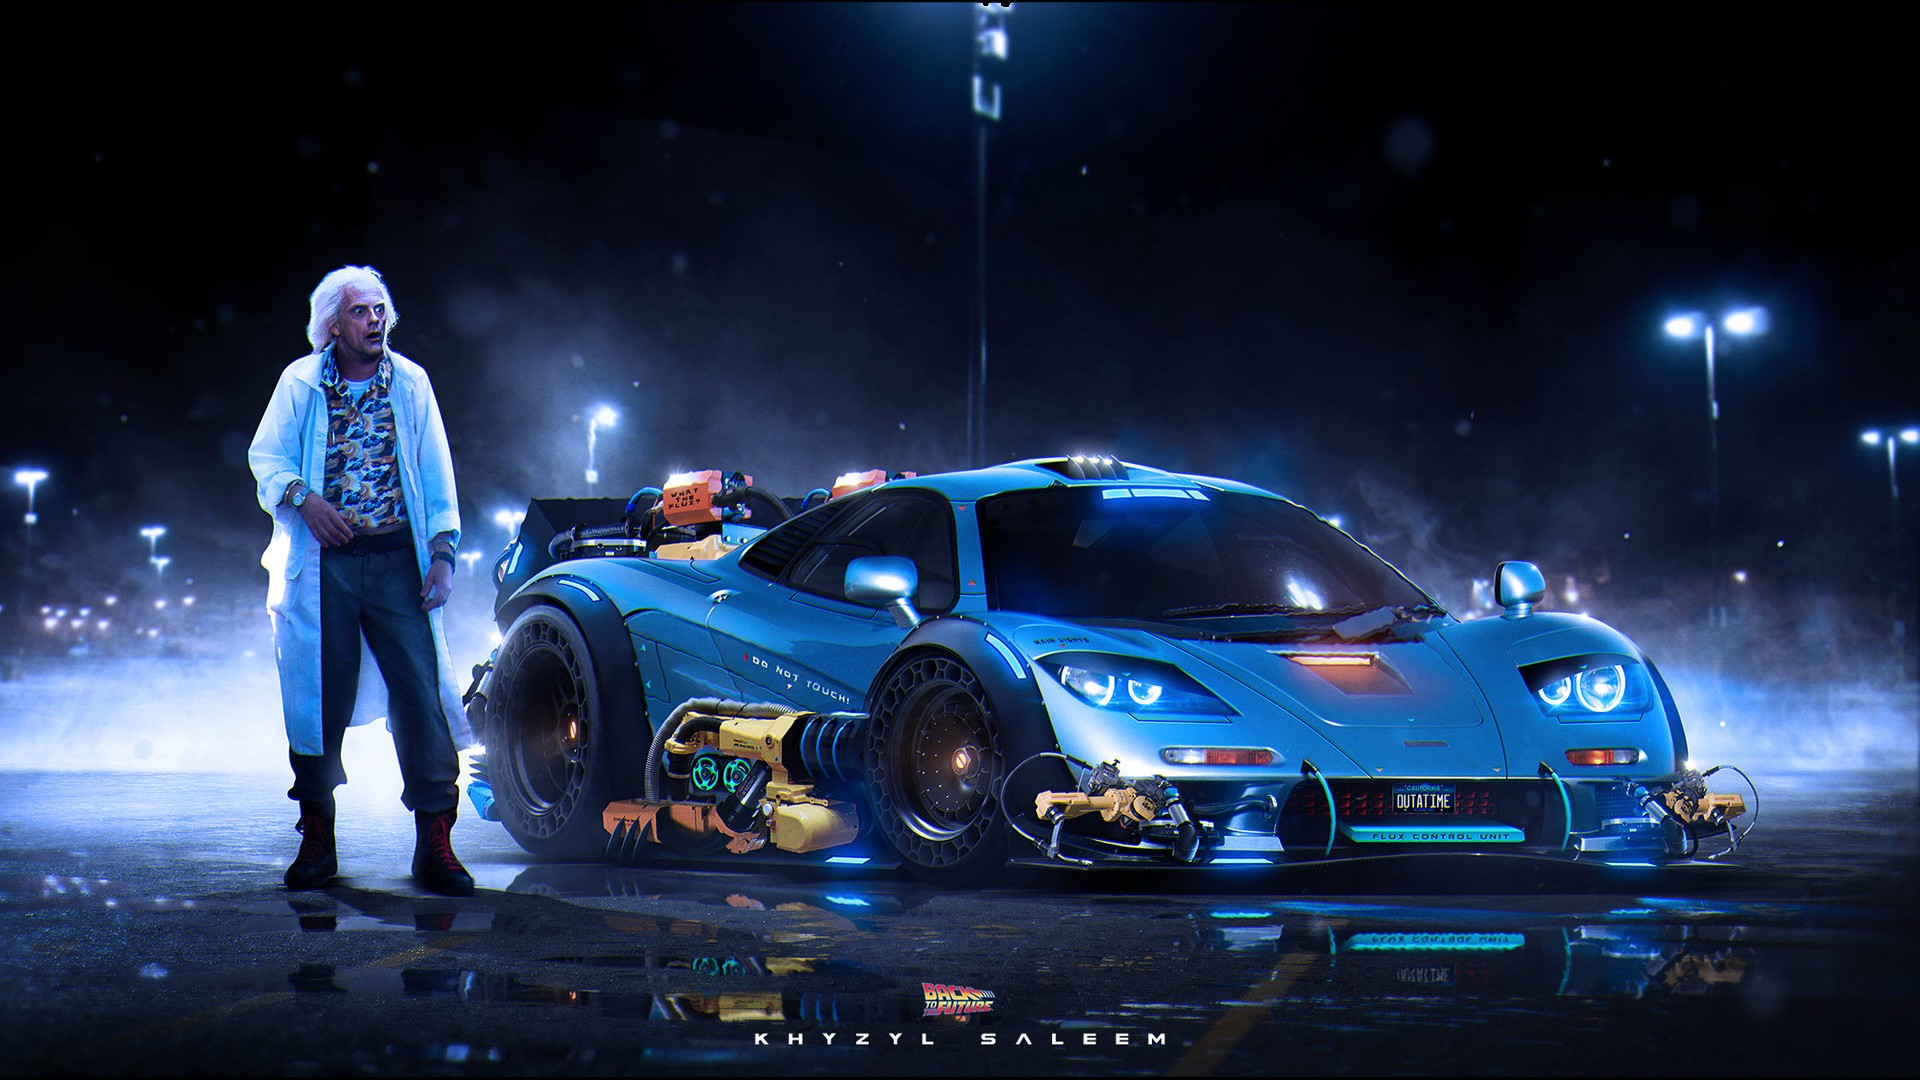 Free Download 3d Desktop Wallpapers Backgrounds Back To The Future Images Download Hd Wallpapers